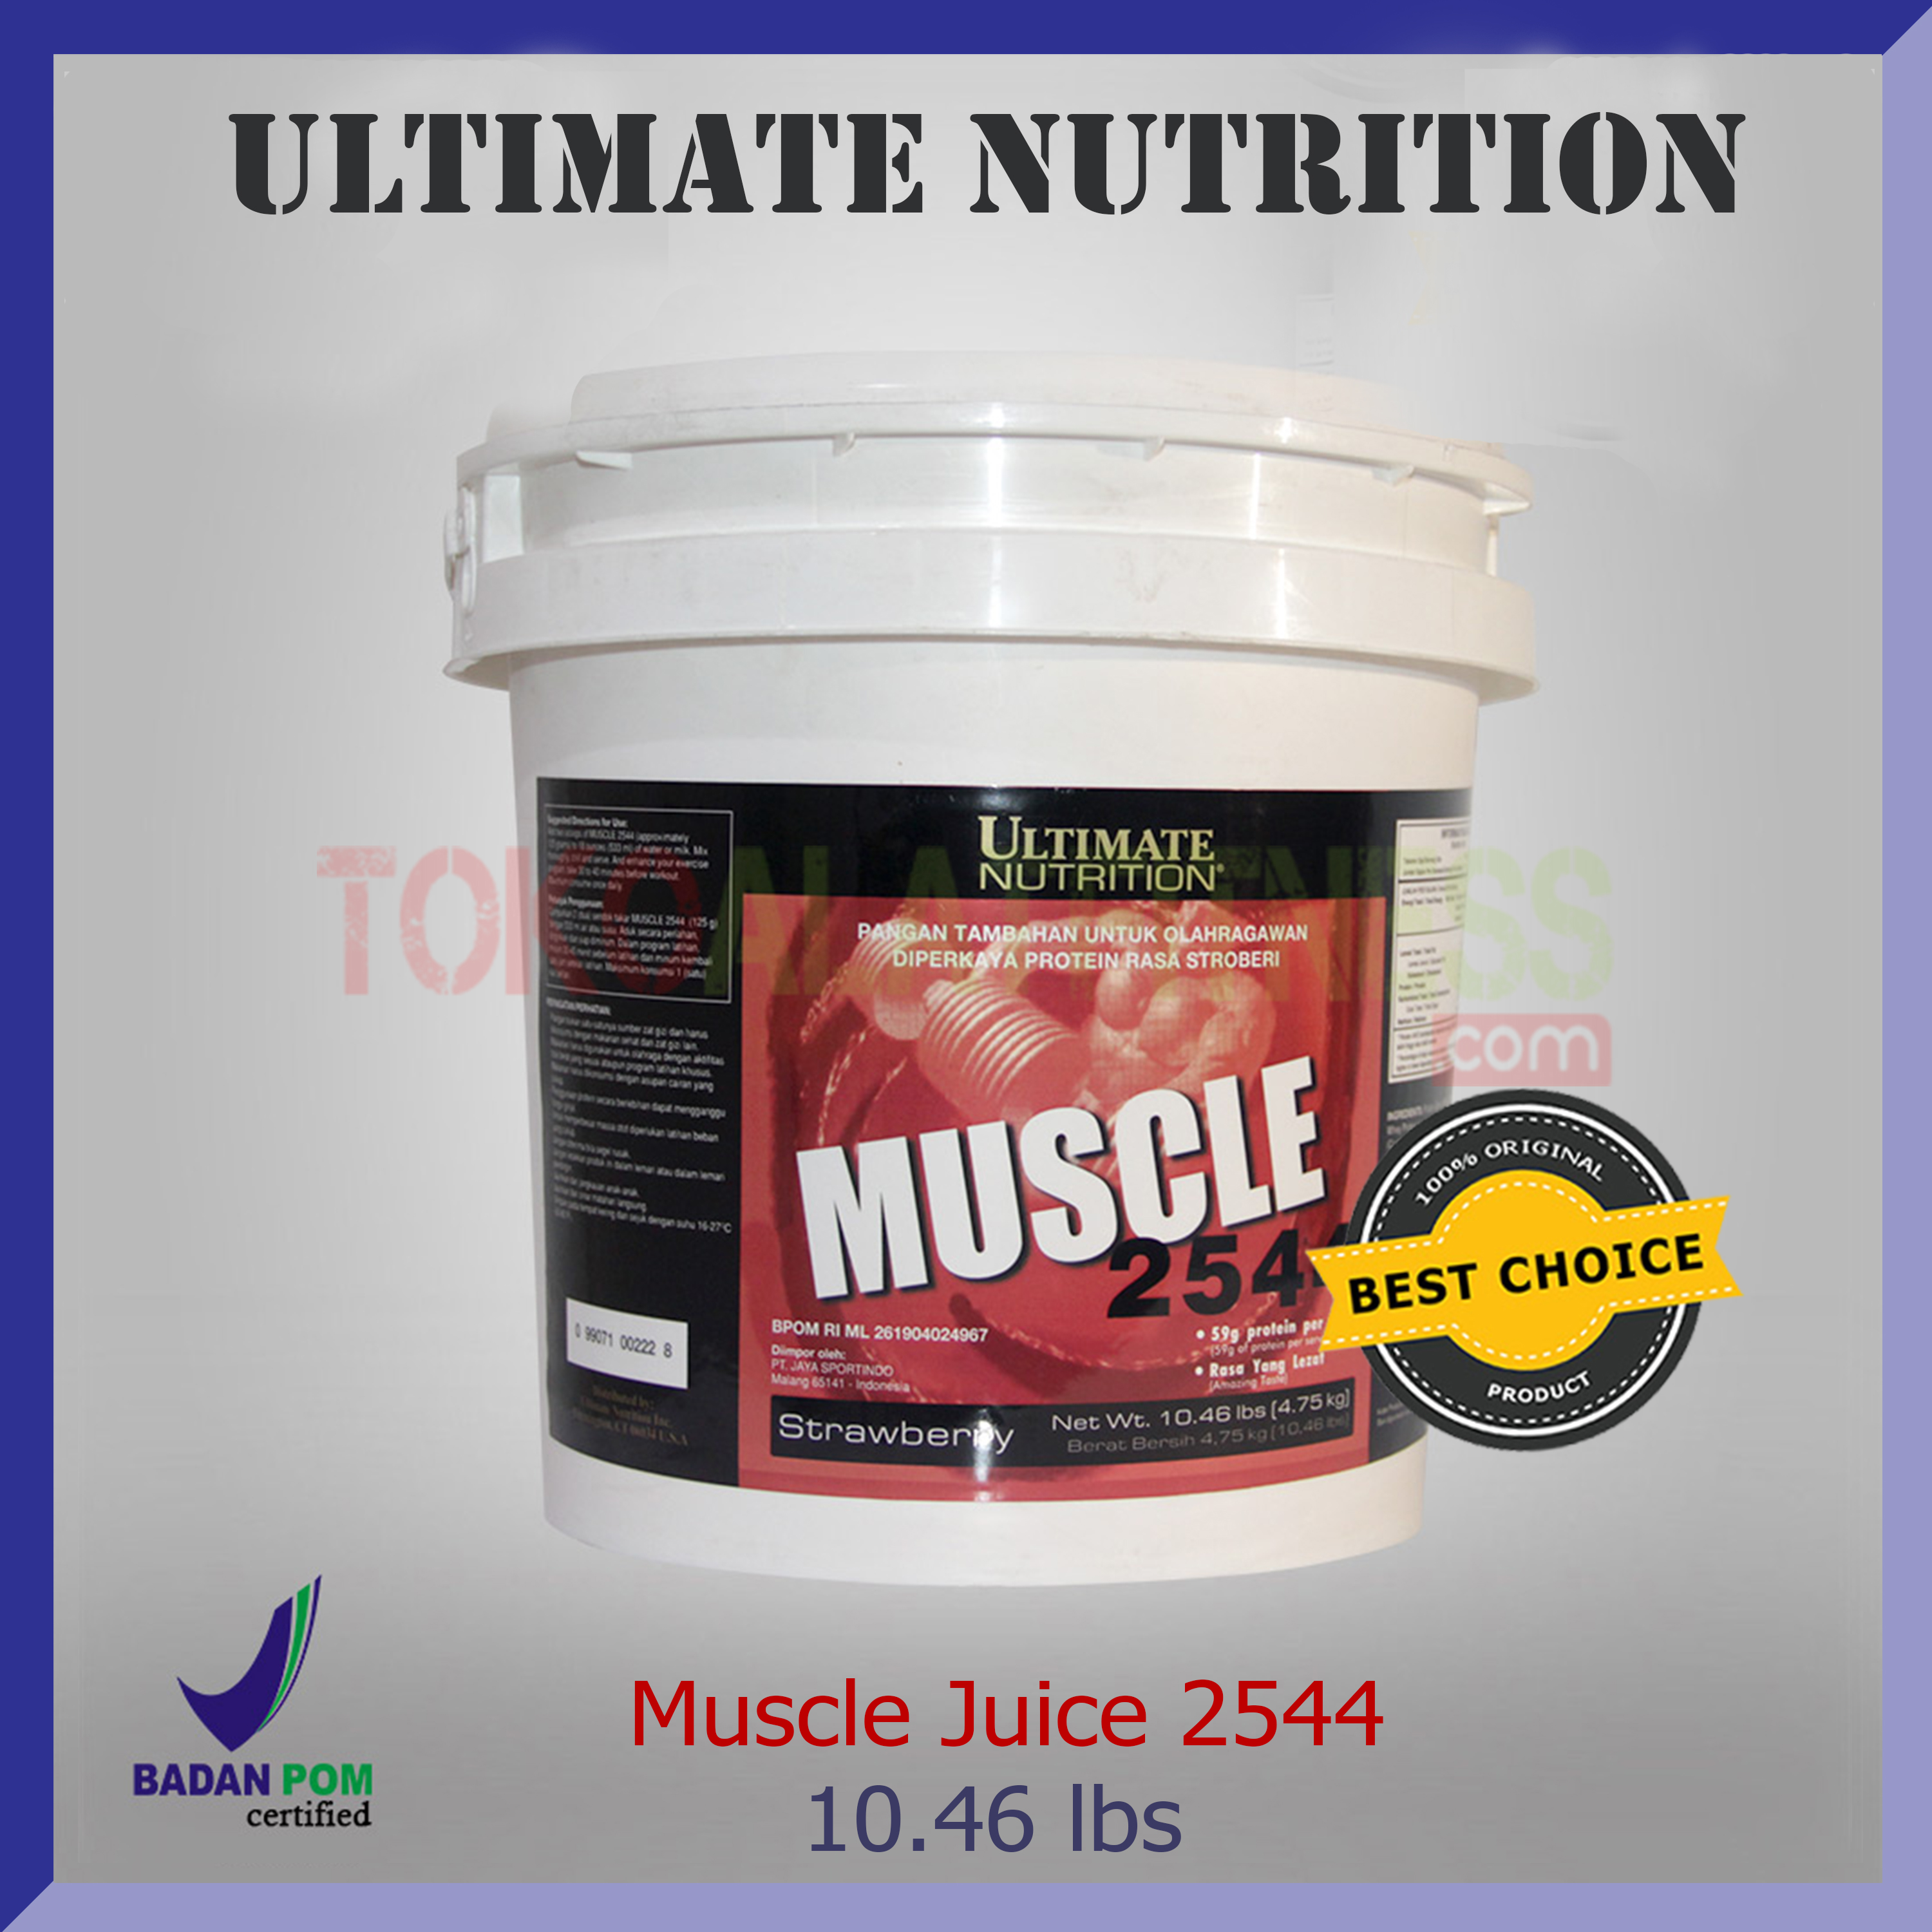 ULTIMATE NUTRITION Muscle 2544 10.46 lbs strawberry - Muscle Juice 2544 10.46 lbs